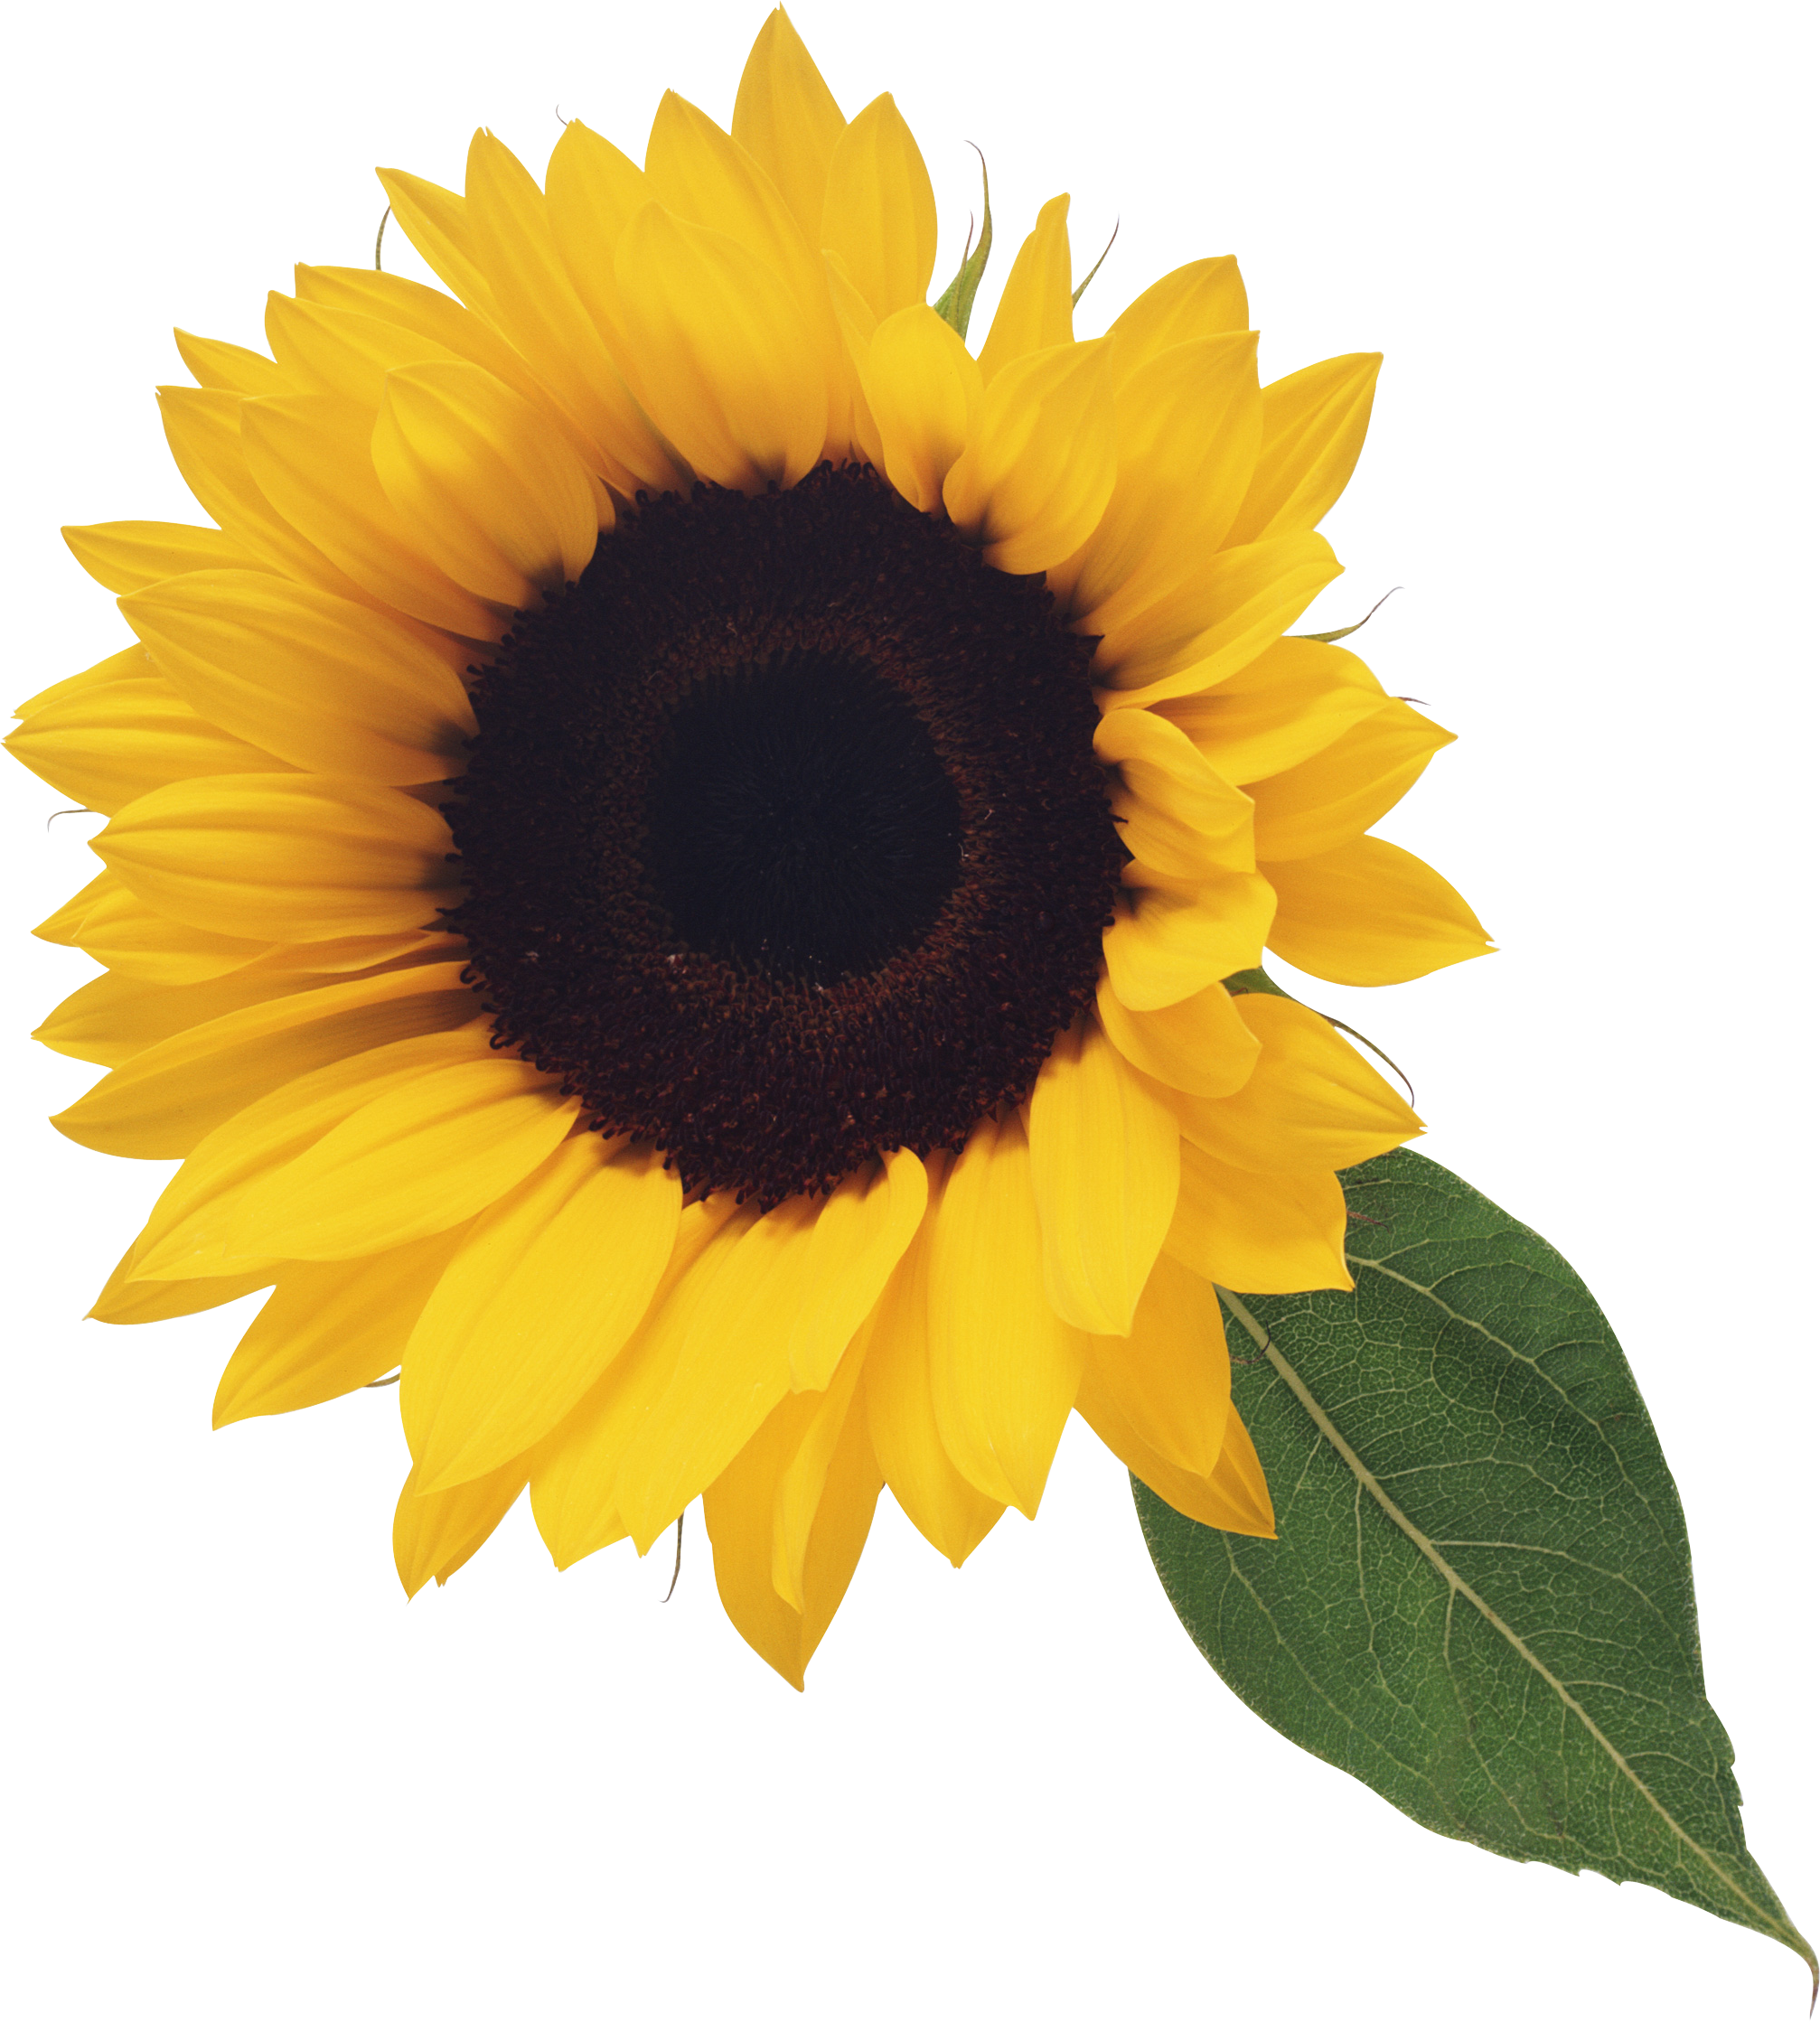 Sunflower png transparent. Image web icons